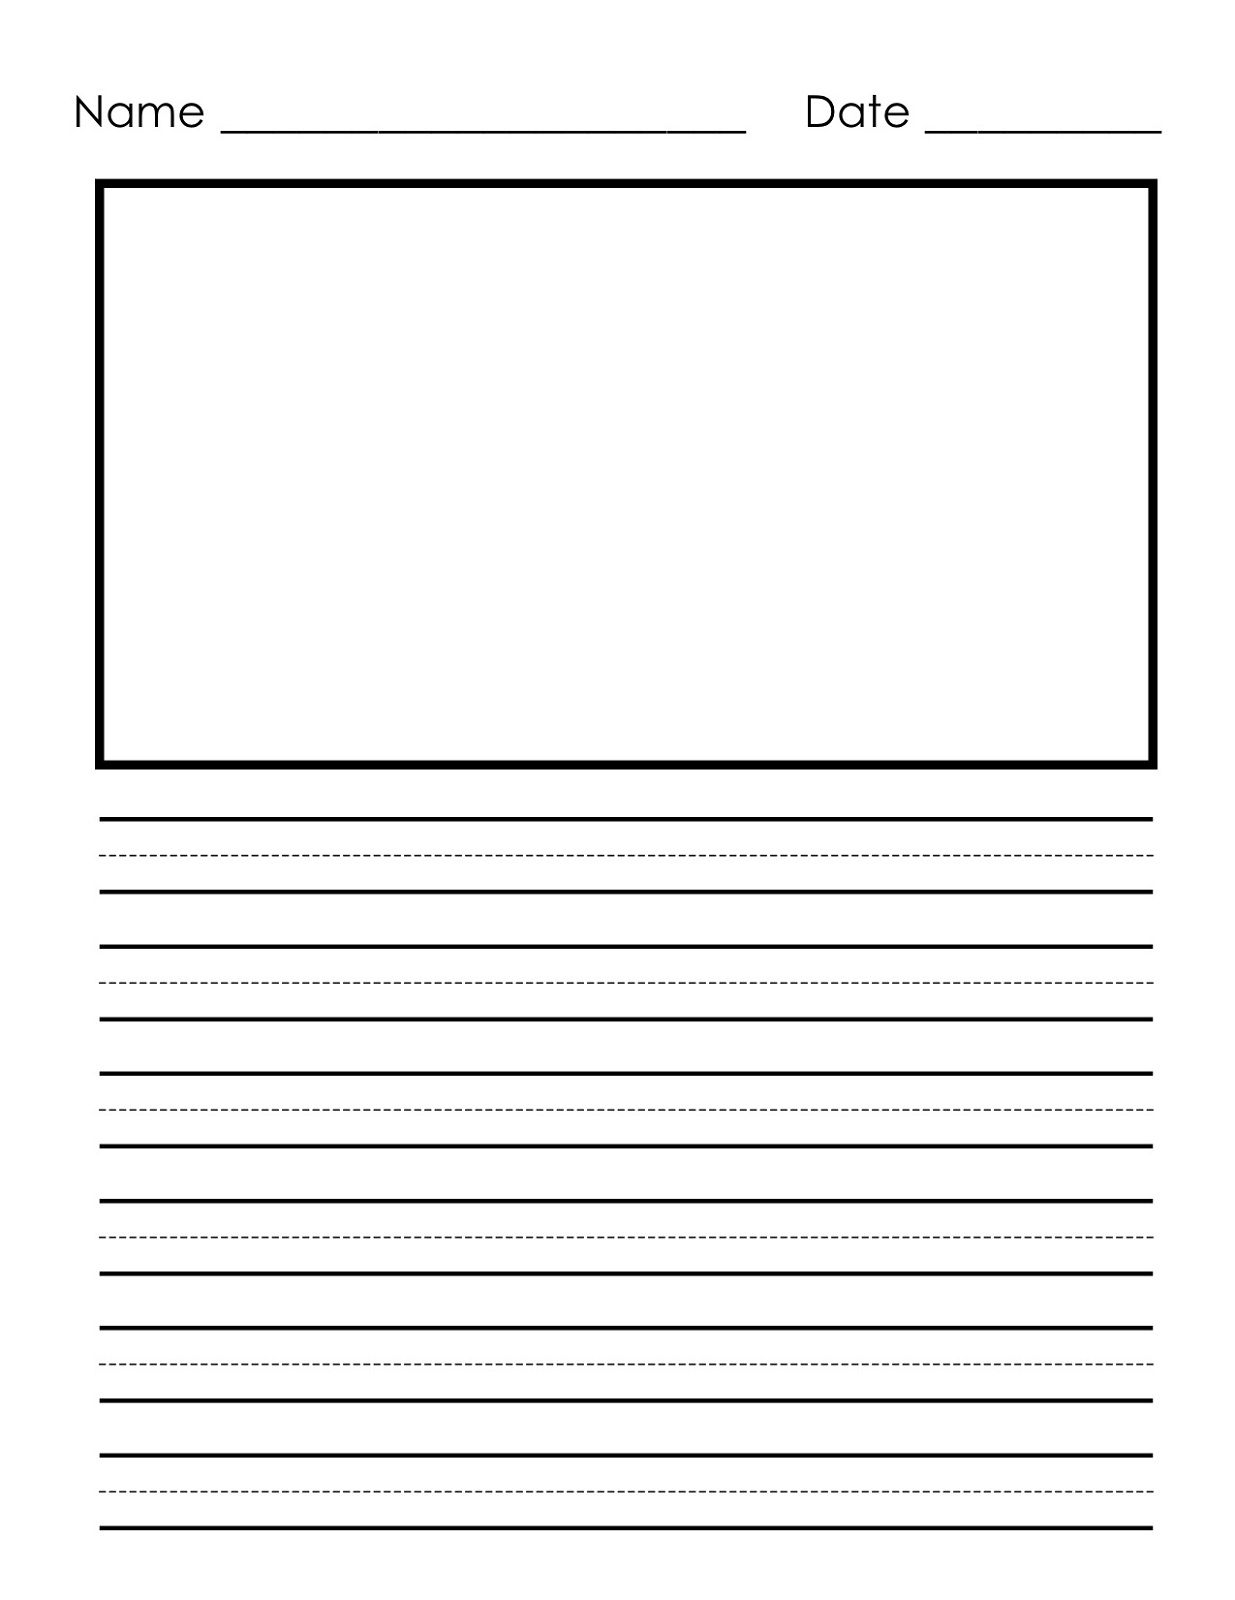 Writing Paper Printable for Children Activity Shelter – School Writing Paper Template